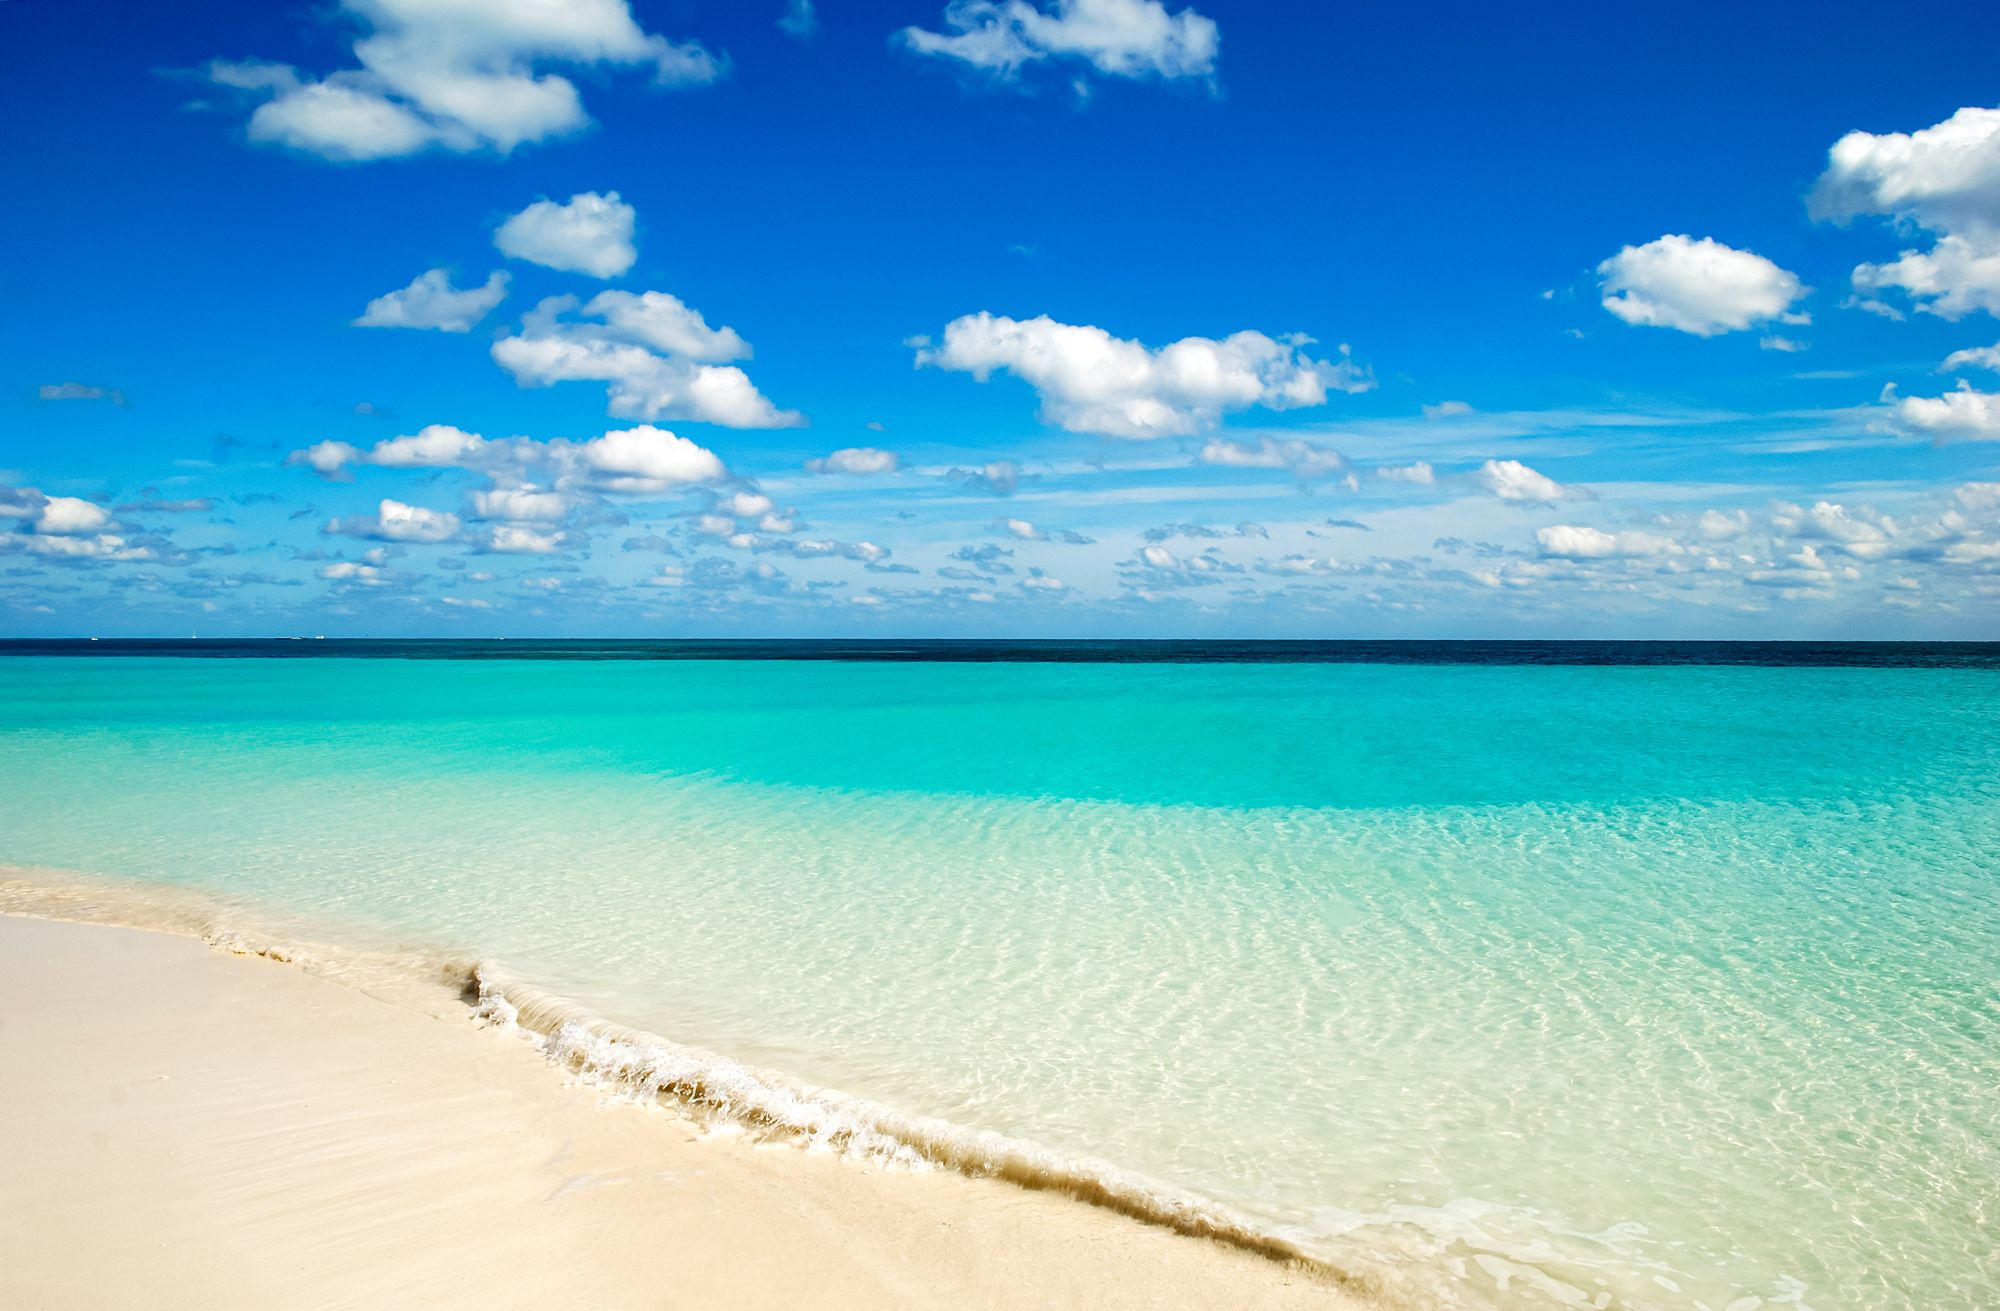 Lucaya beach Grand Bahama Island The Bahamas